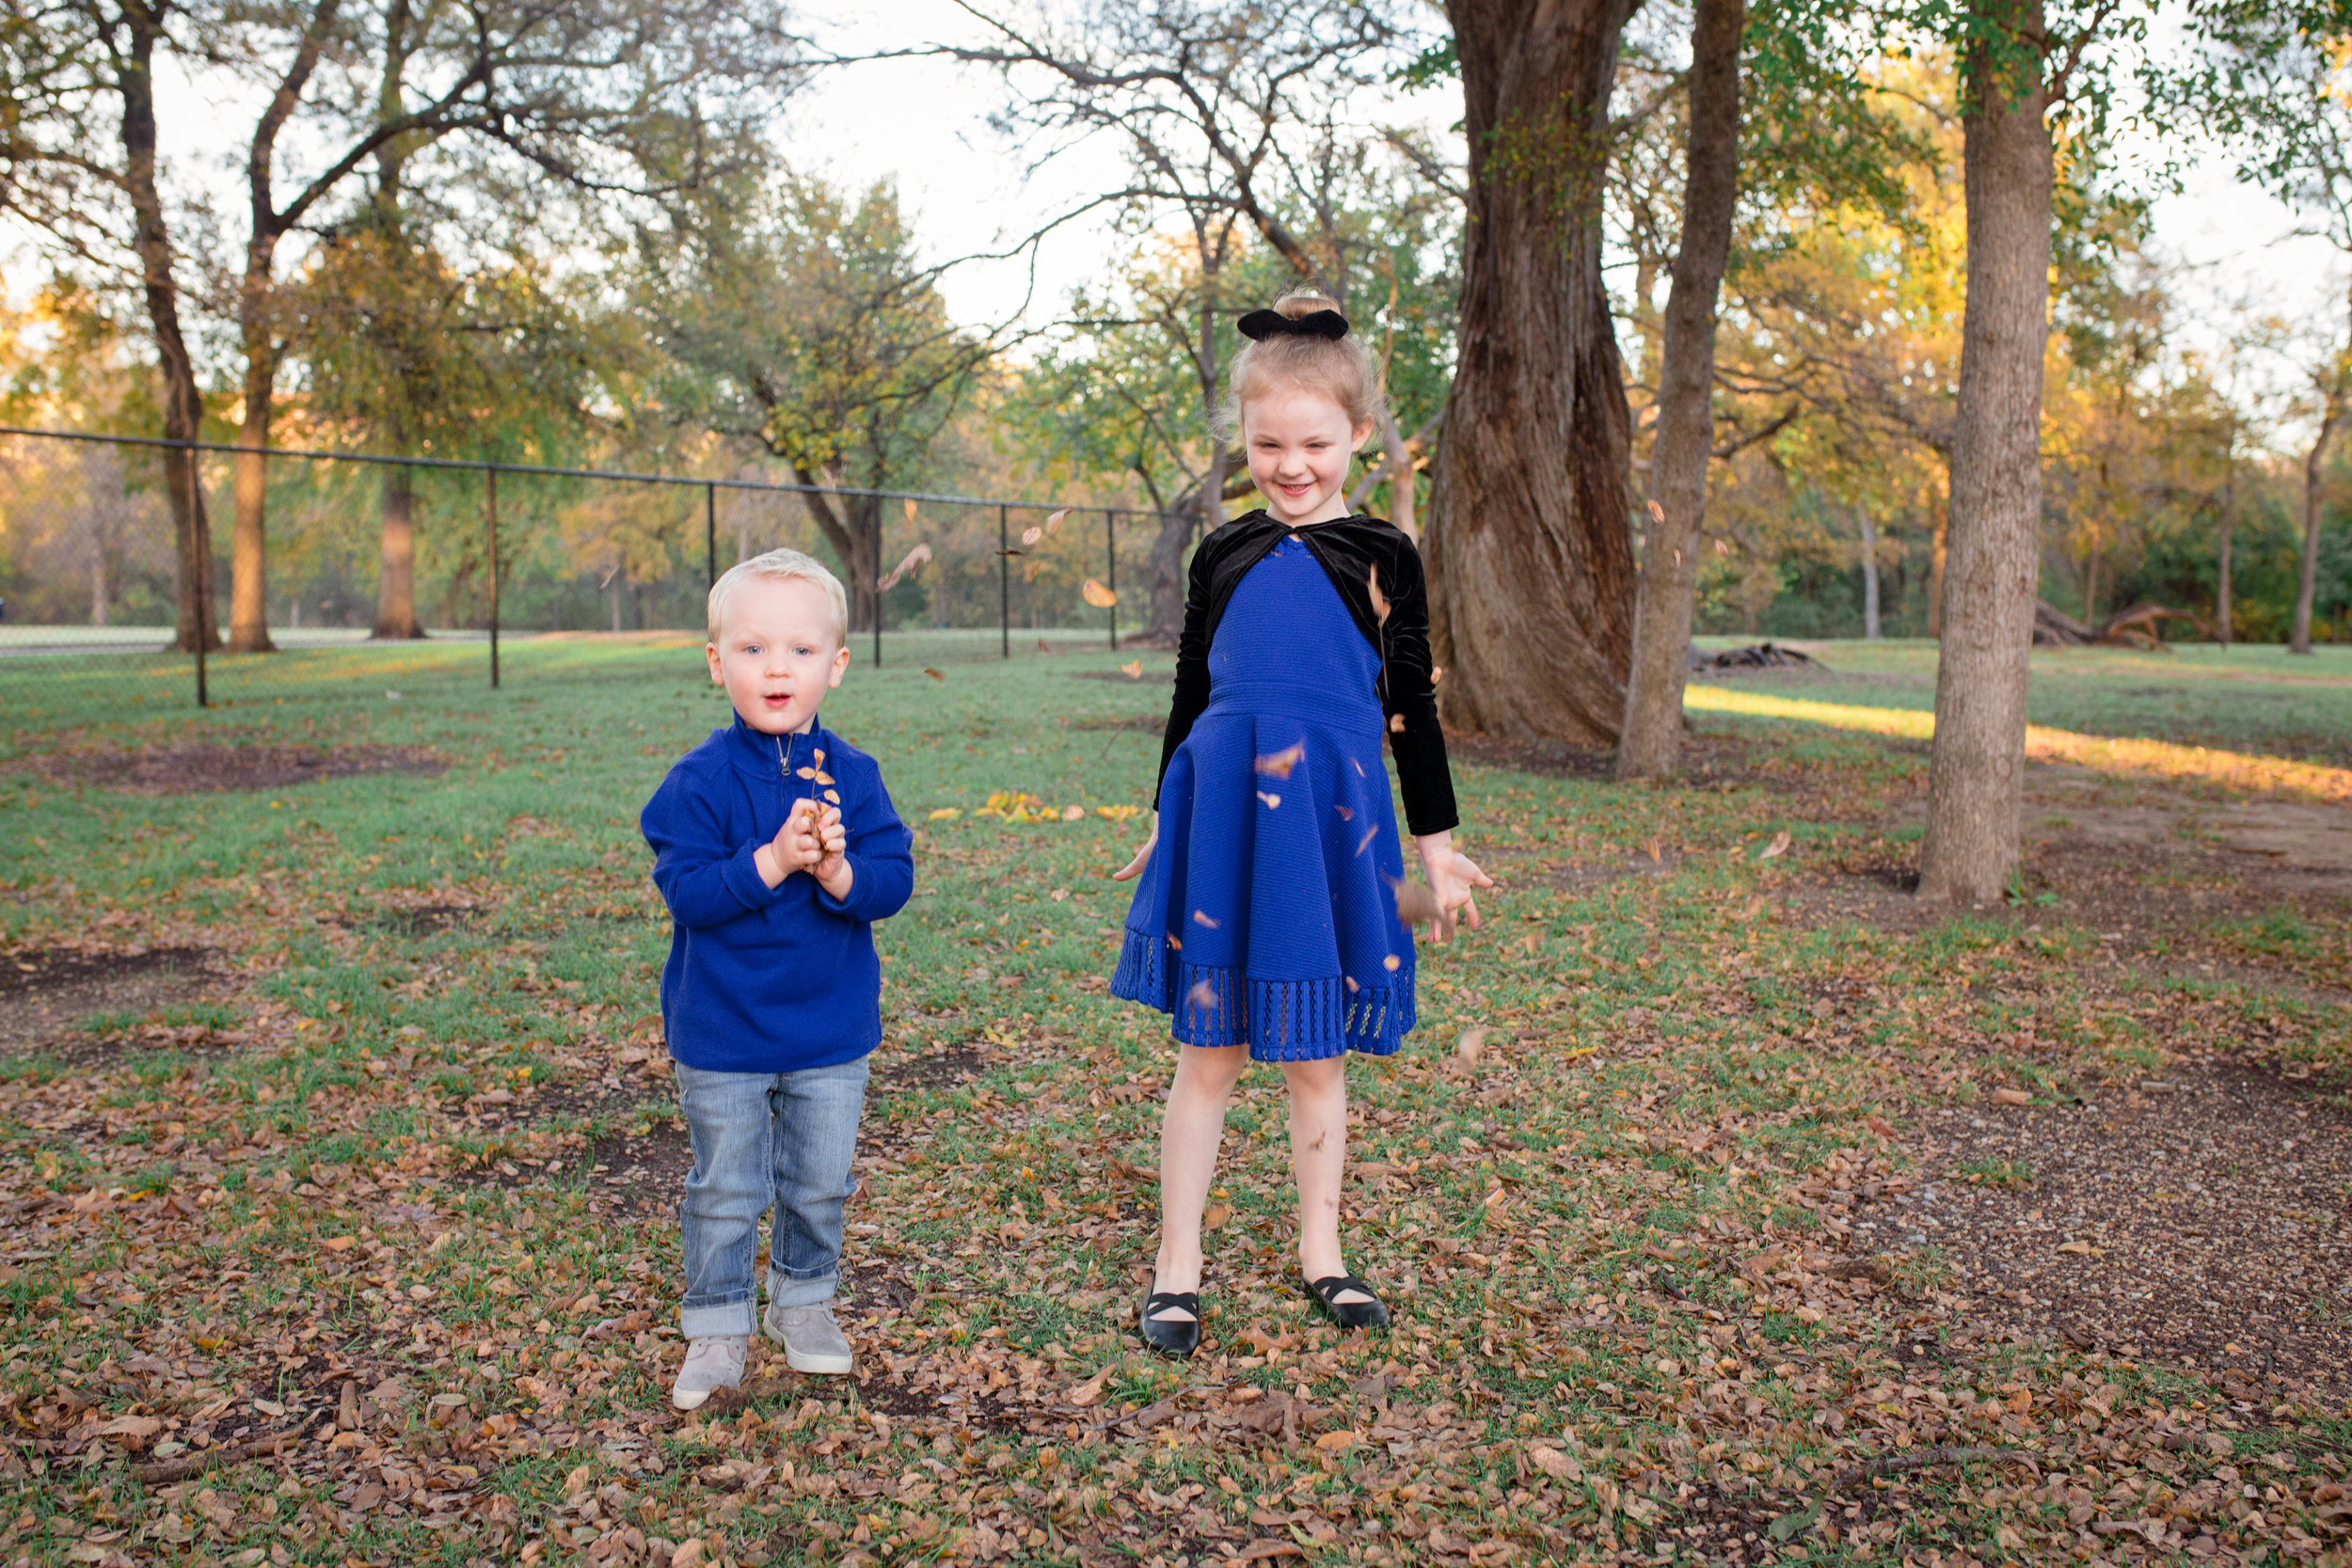 18_11_04 The Brown Family Session51.jpg